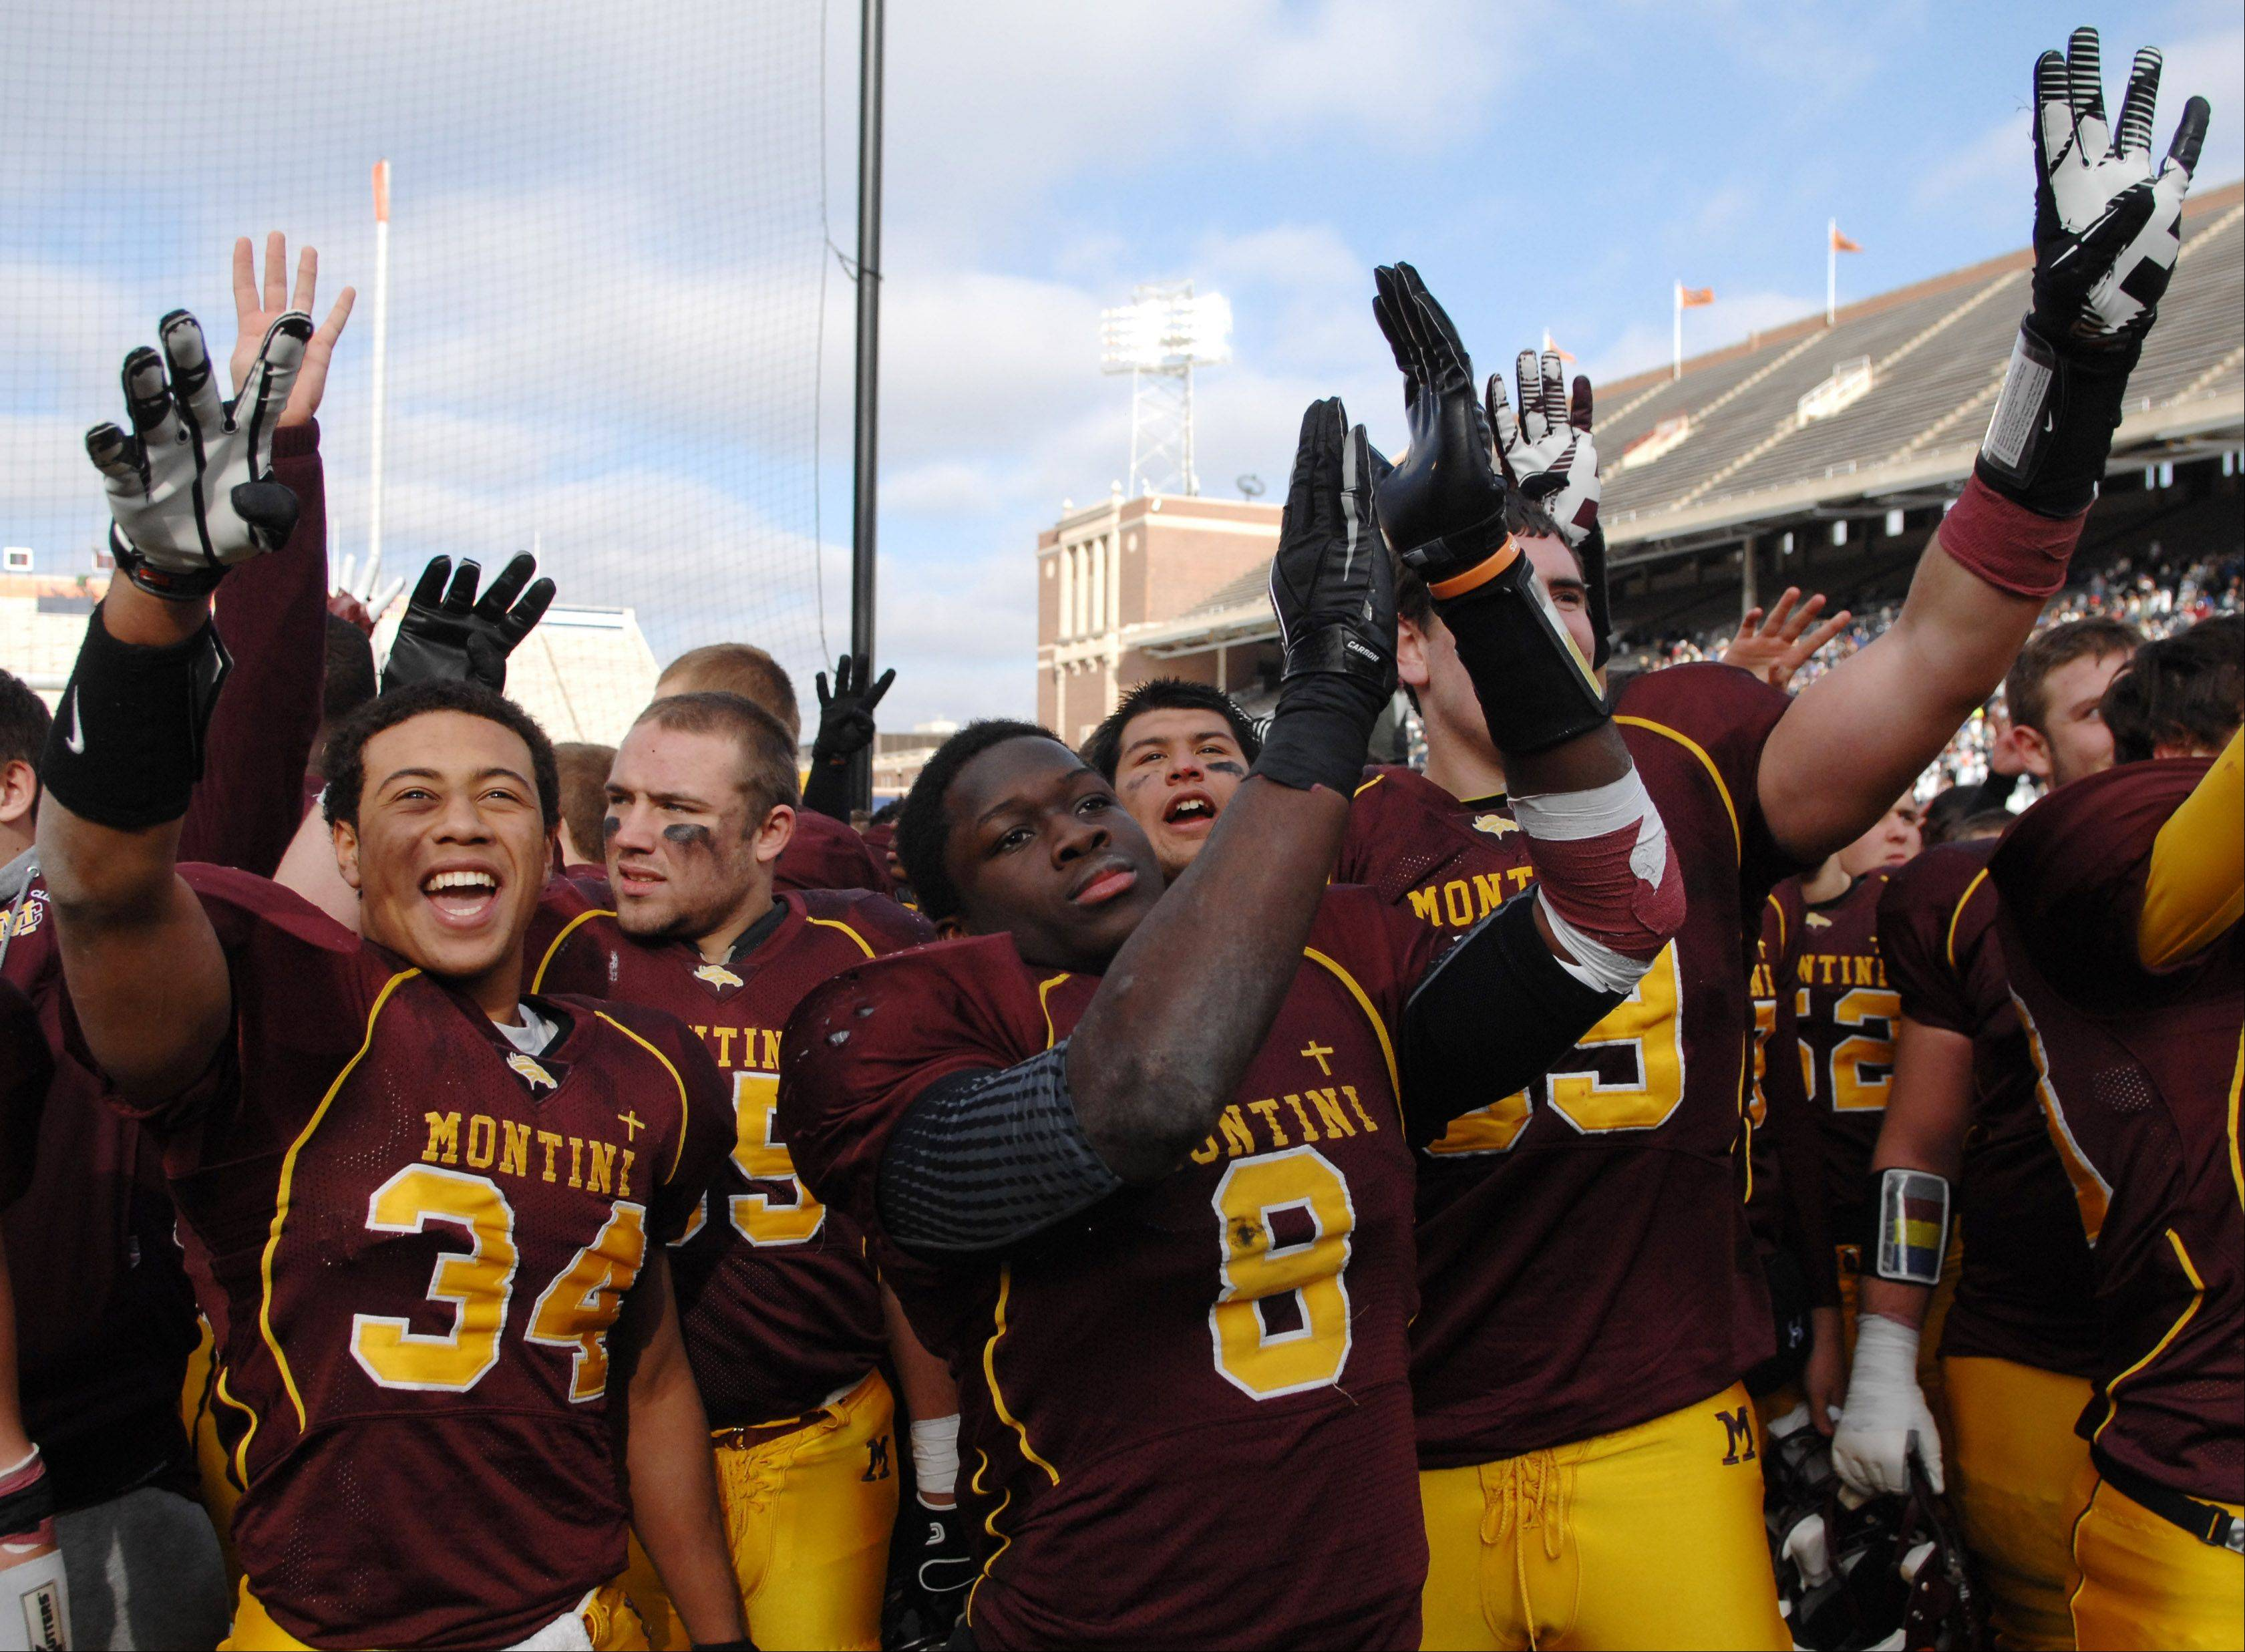 Montini players salute their fans after their win over Morris during Saturday�s Class 5A state title game at Memorial Stadium in Champaign.